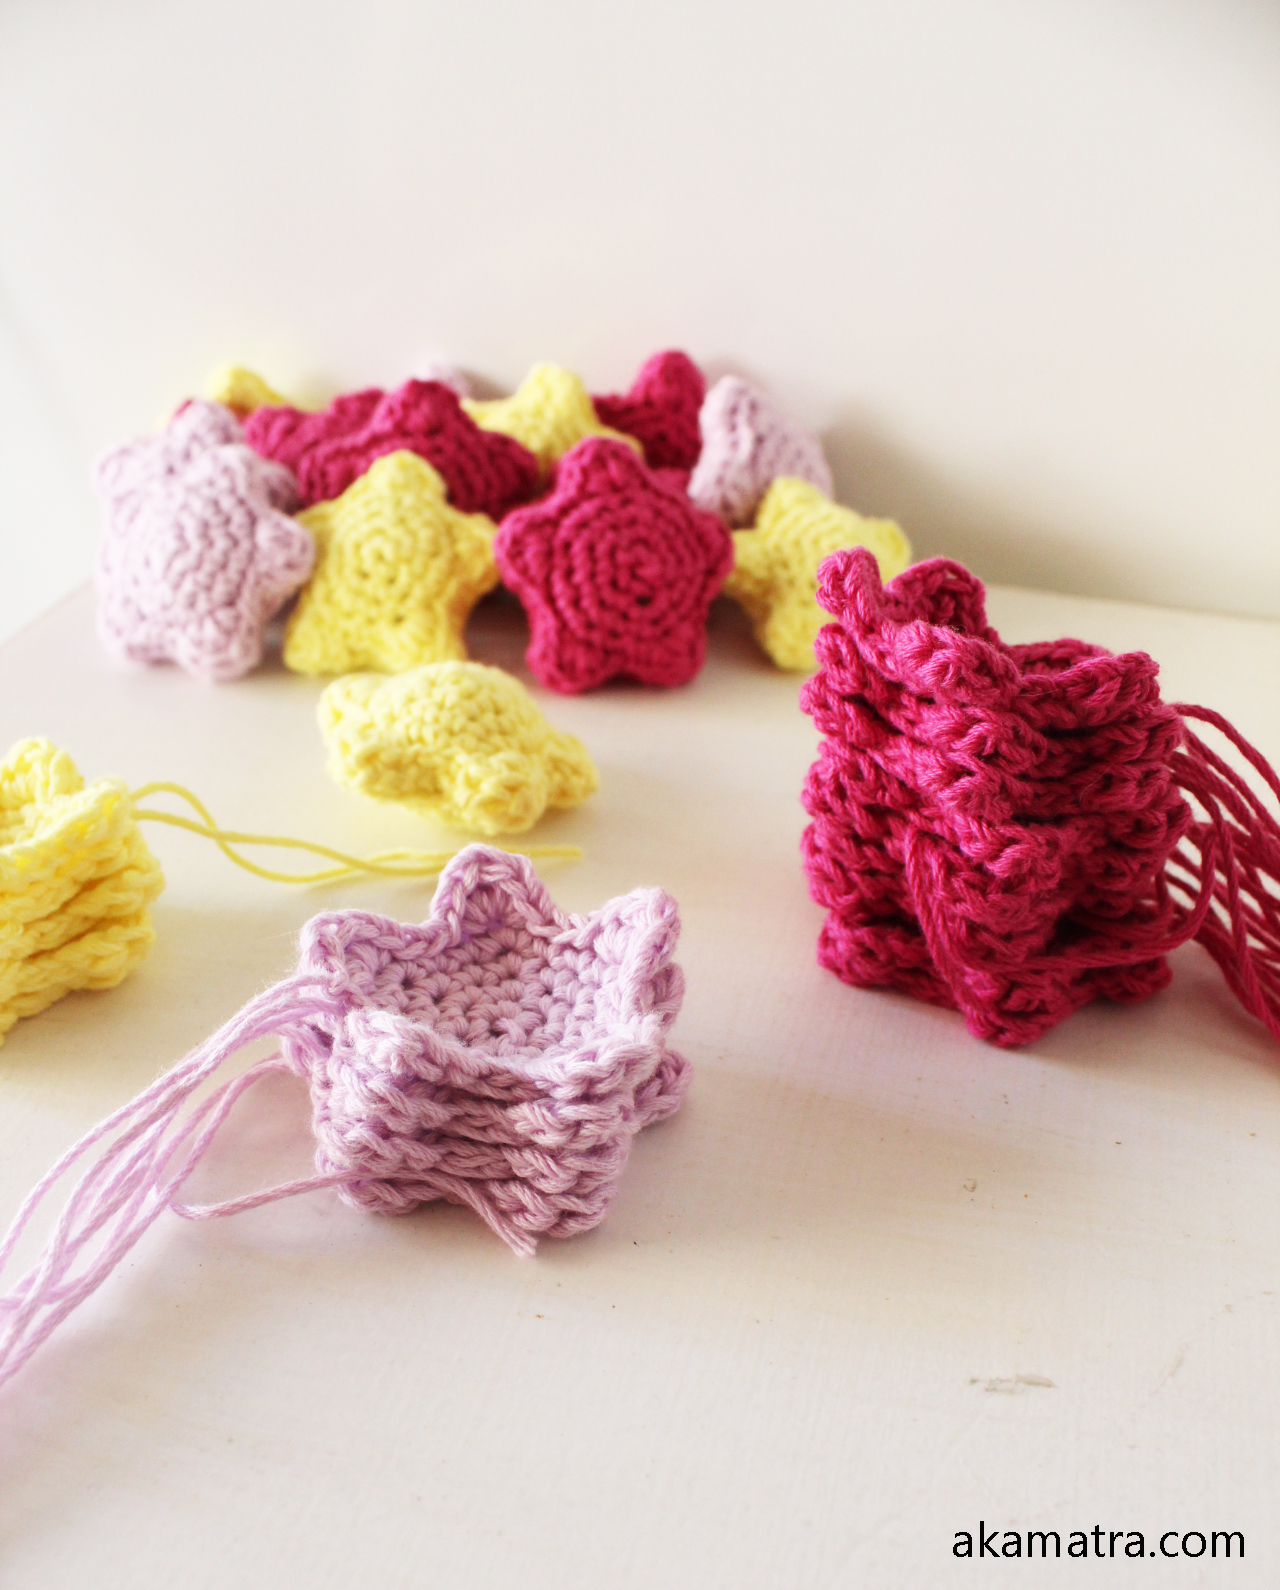 Crochet Stars - Free Ornament Pattern | Adornos de ganchillo ... | 1590x1280